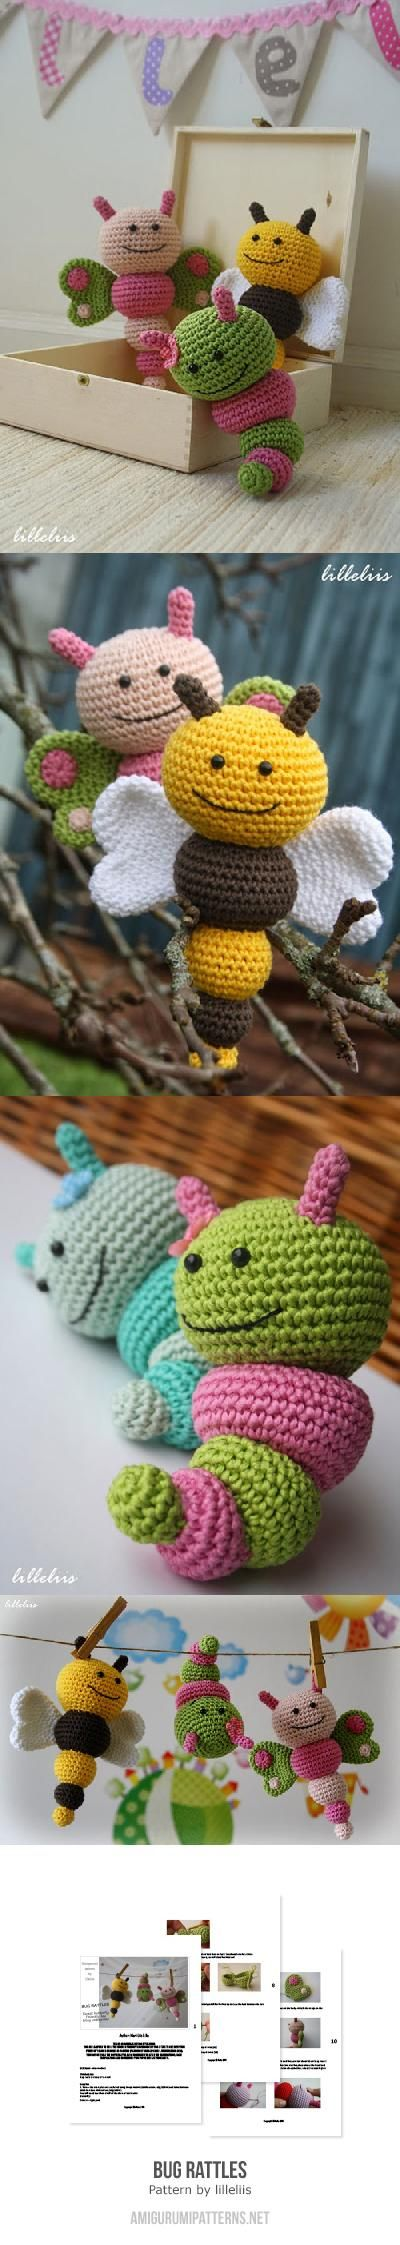 A cute pattern from Lilleliis, found at Amigurumipatterns.net